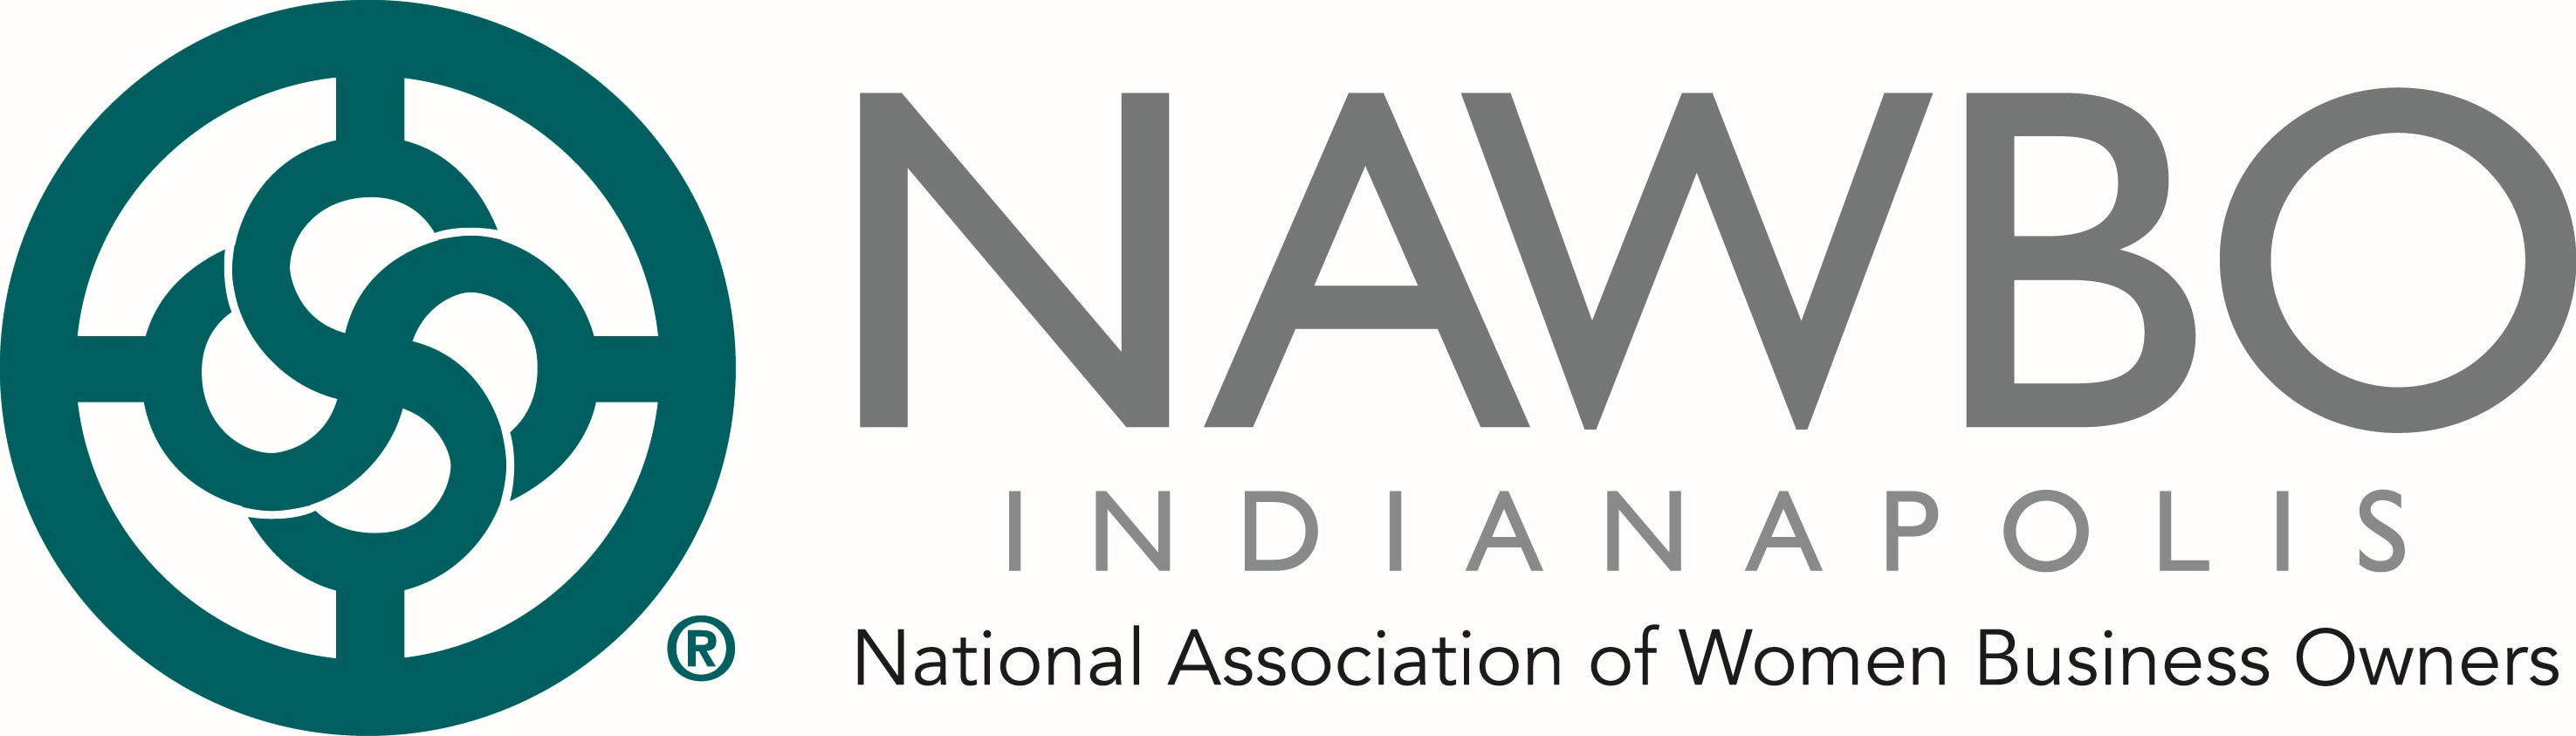 Member - National Association of Women Business Owners